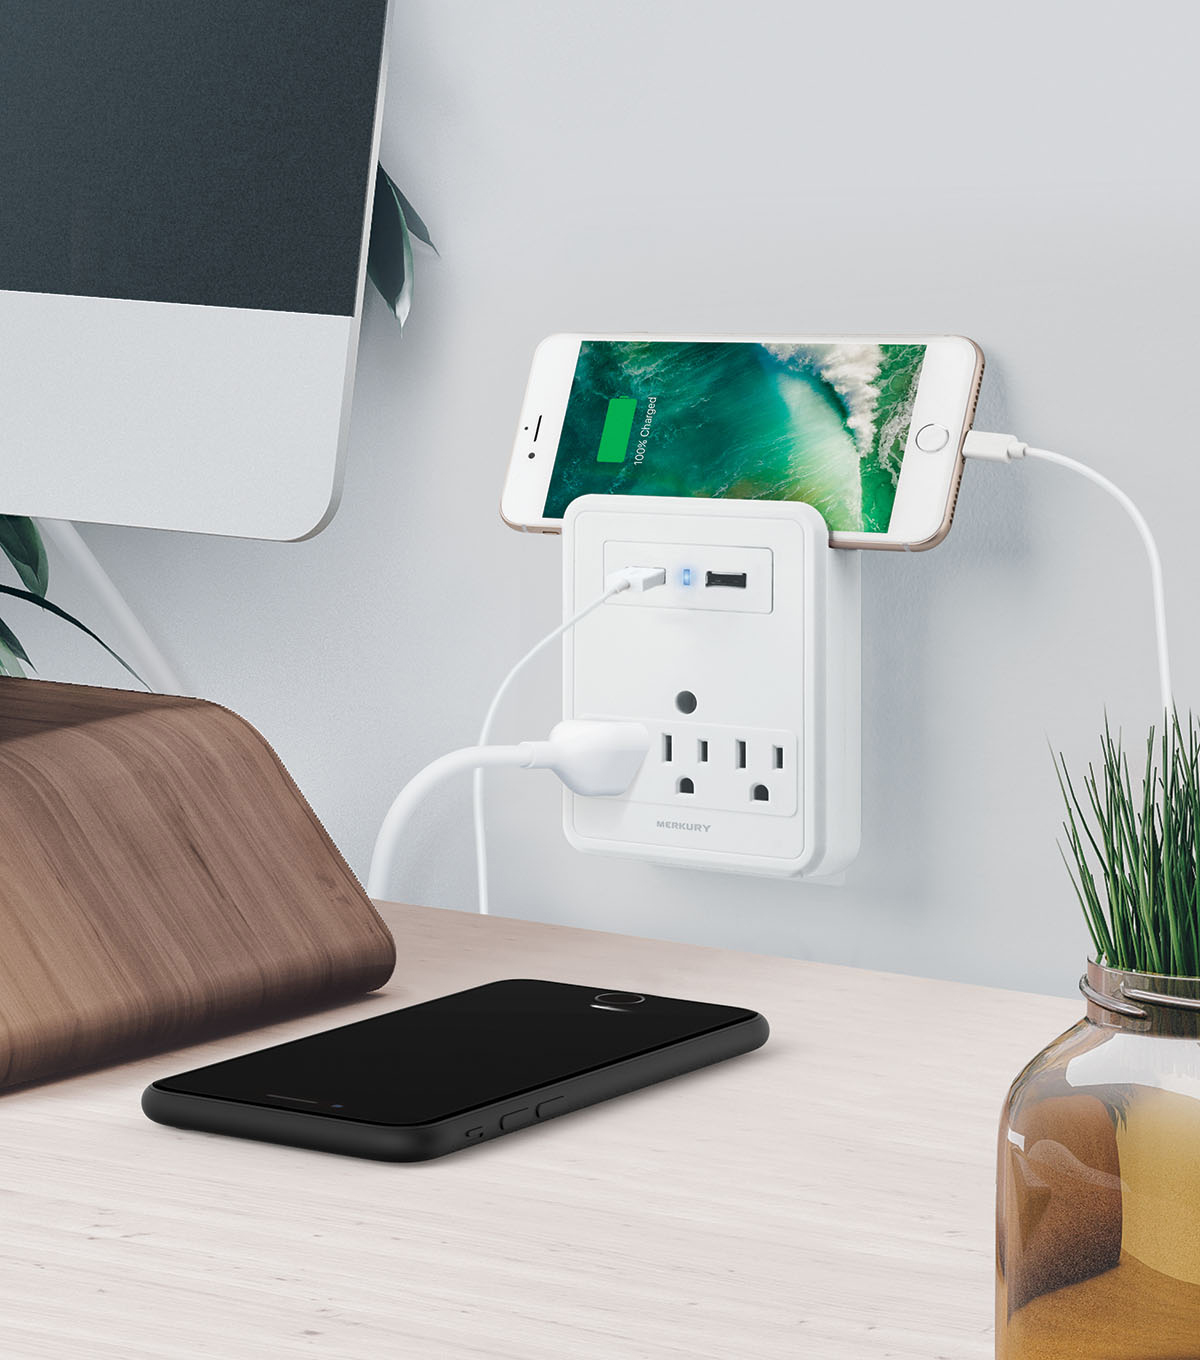 USB Wall Plate With Phone Stand